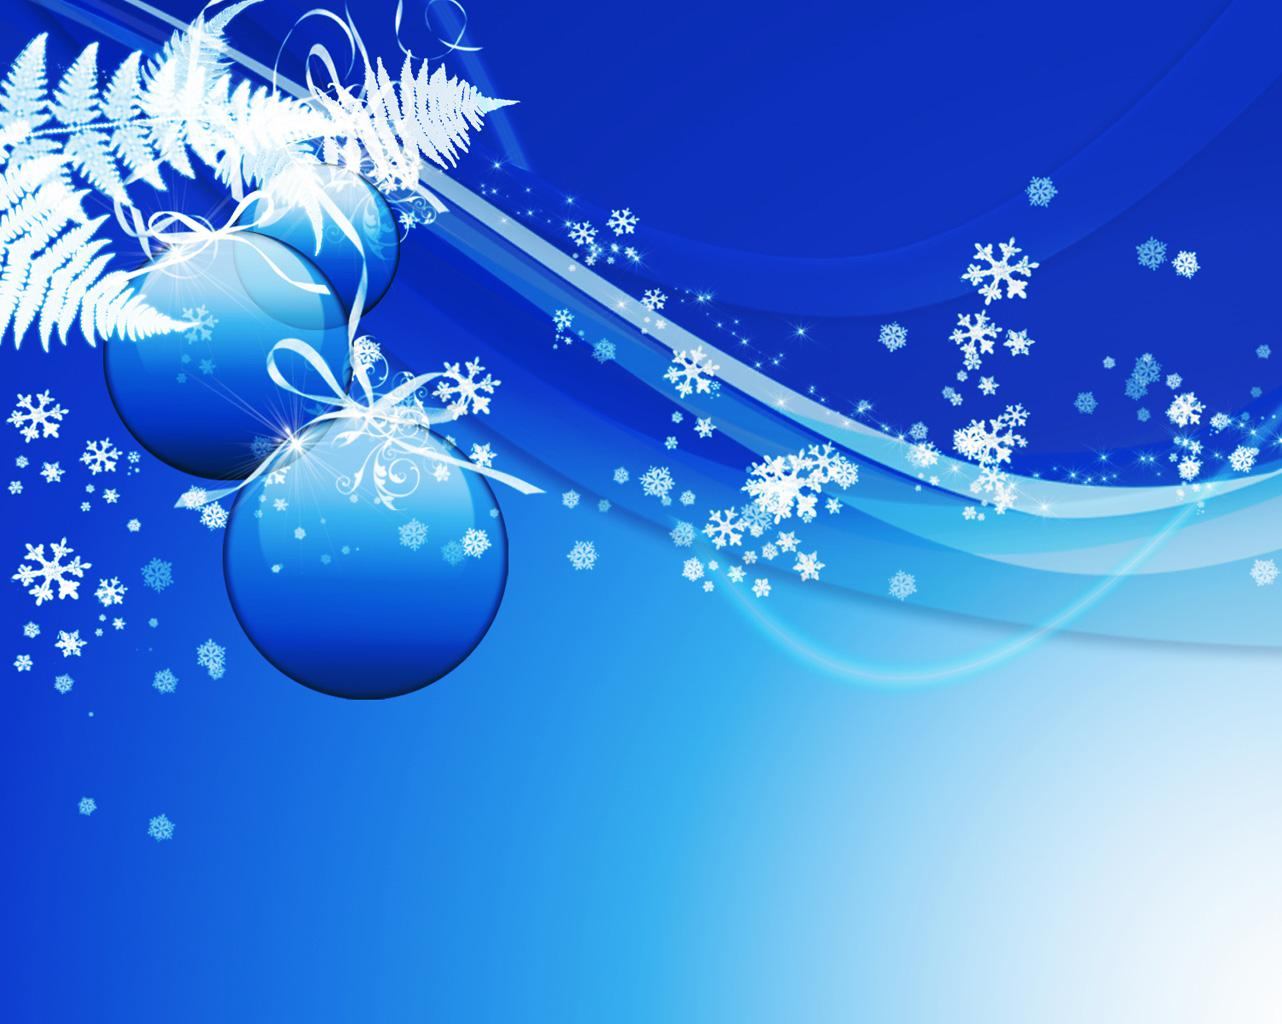 holiday powerpoint background christmas - photo #30